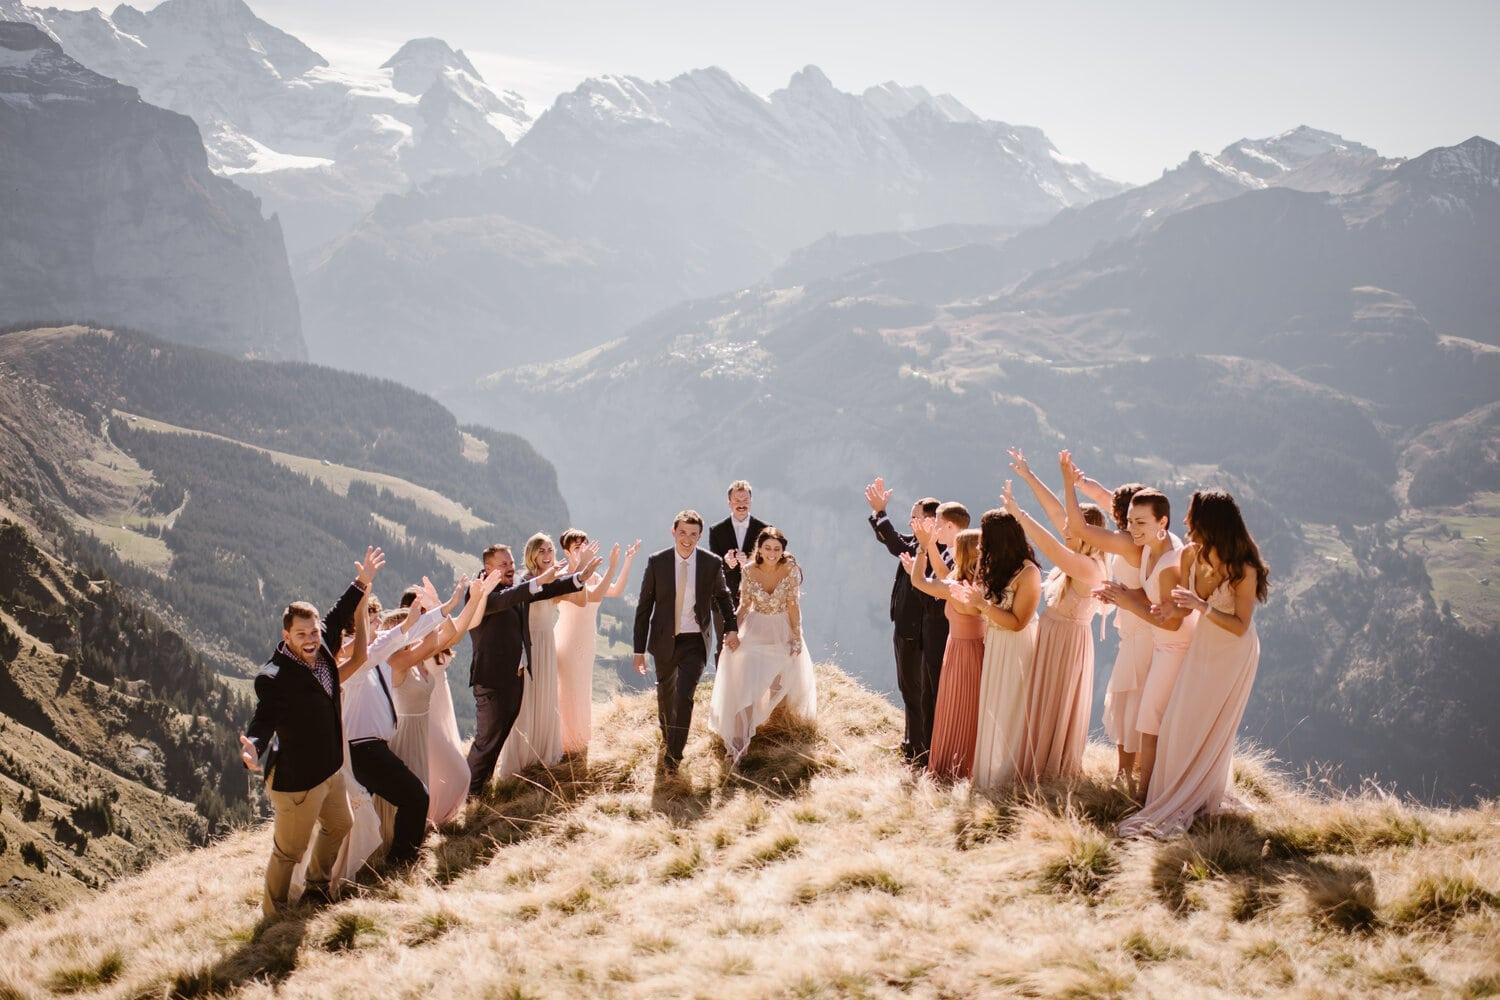 Intimate wedding bridal party cheer while newlyweds walk down the aisle during their mountain elopement.